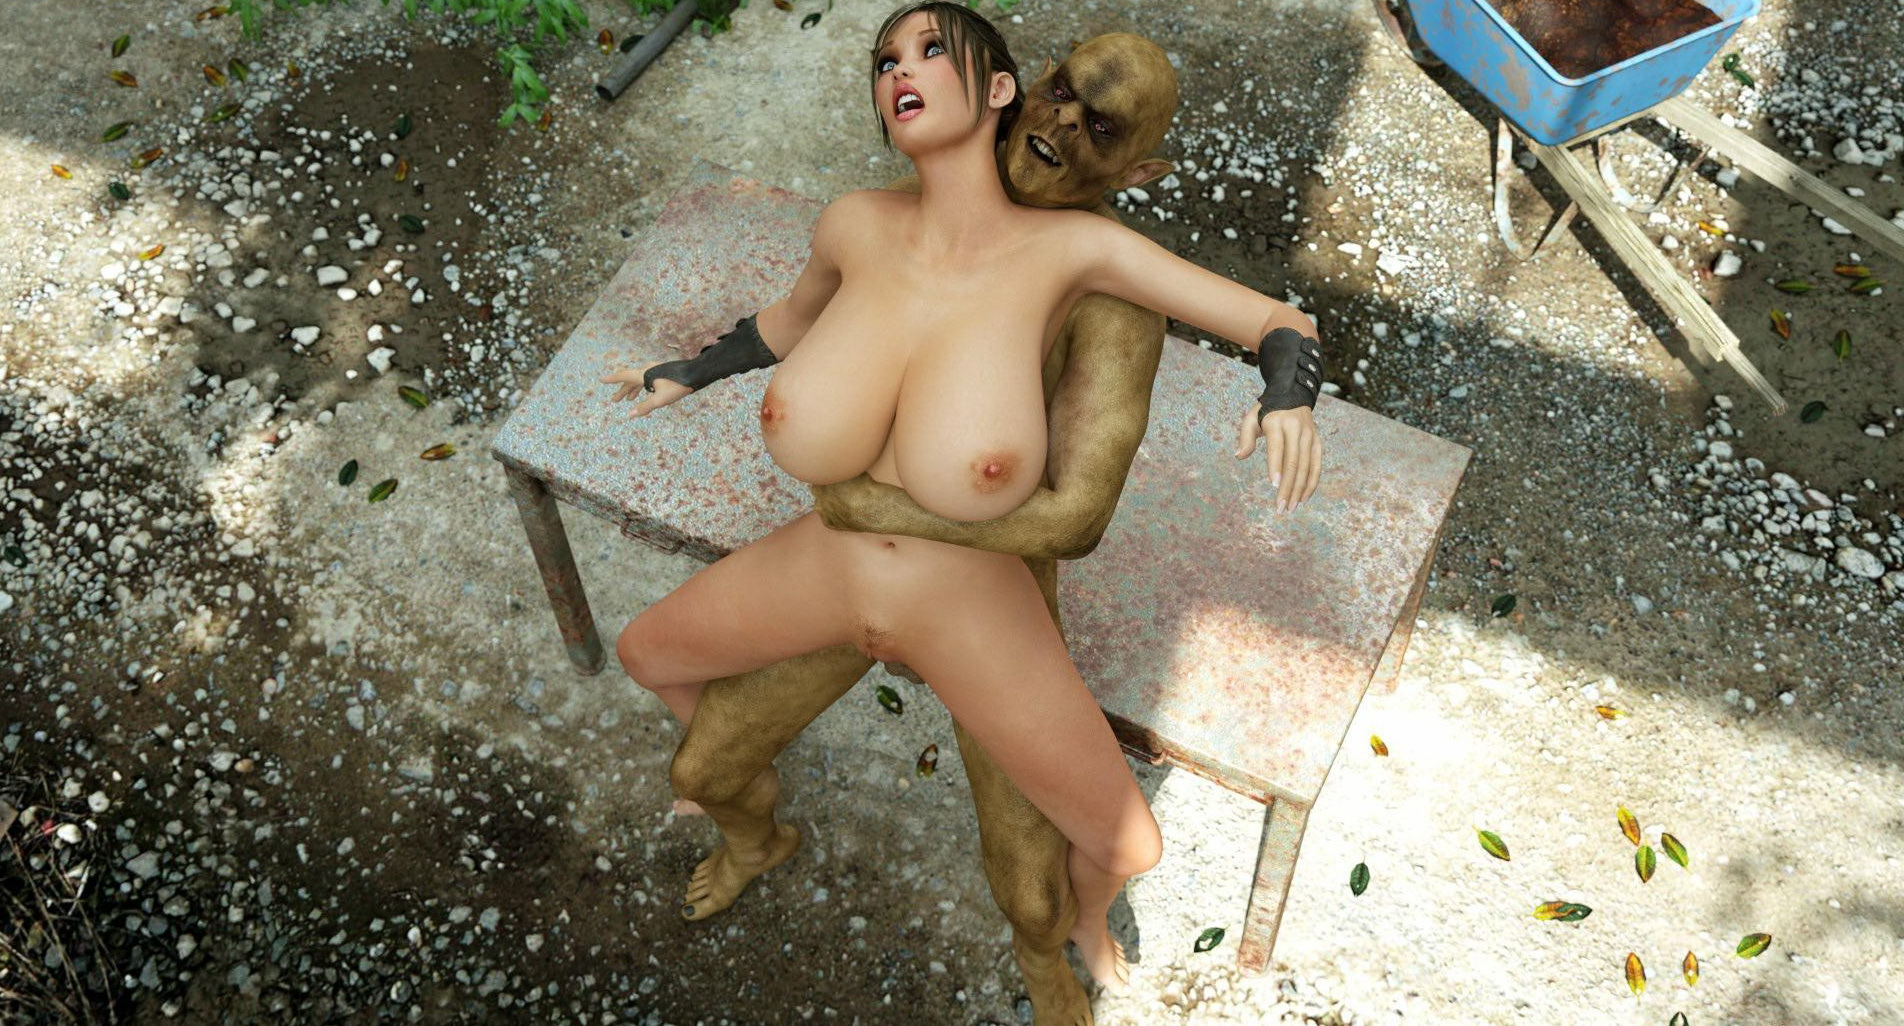 Lara croft pussy pictures nackt streaming